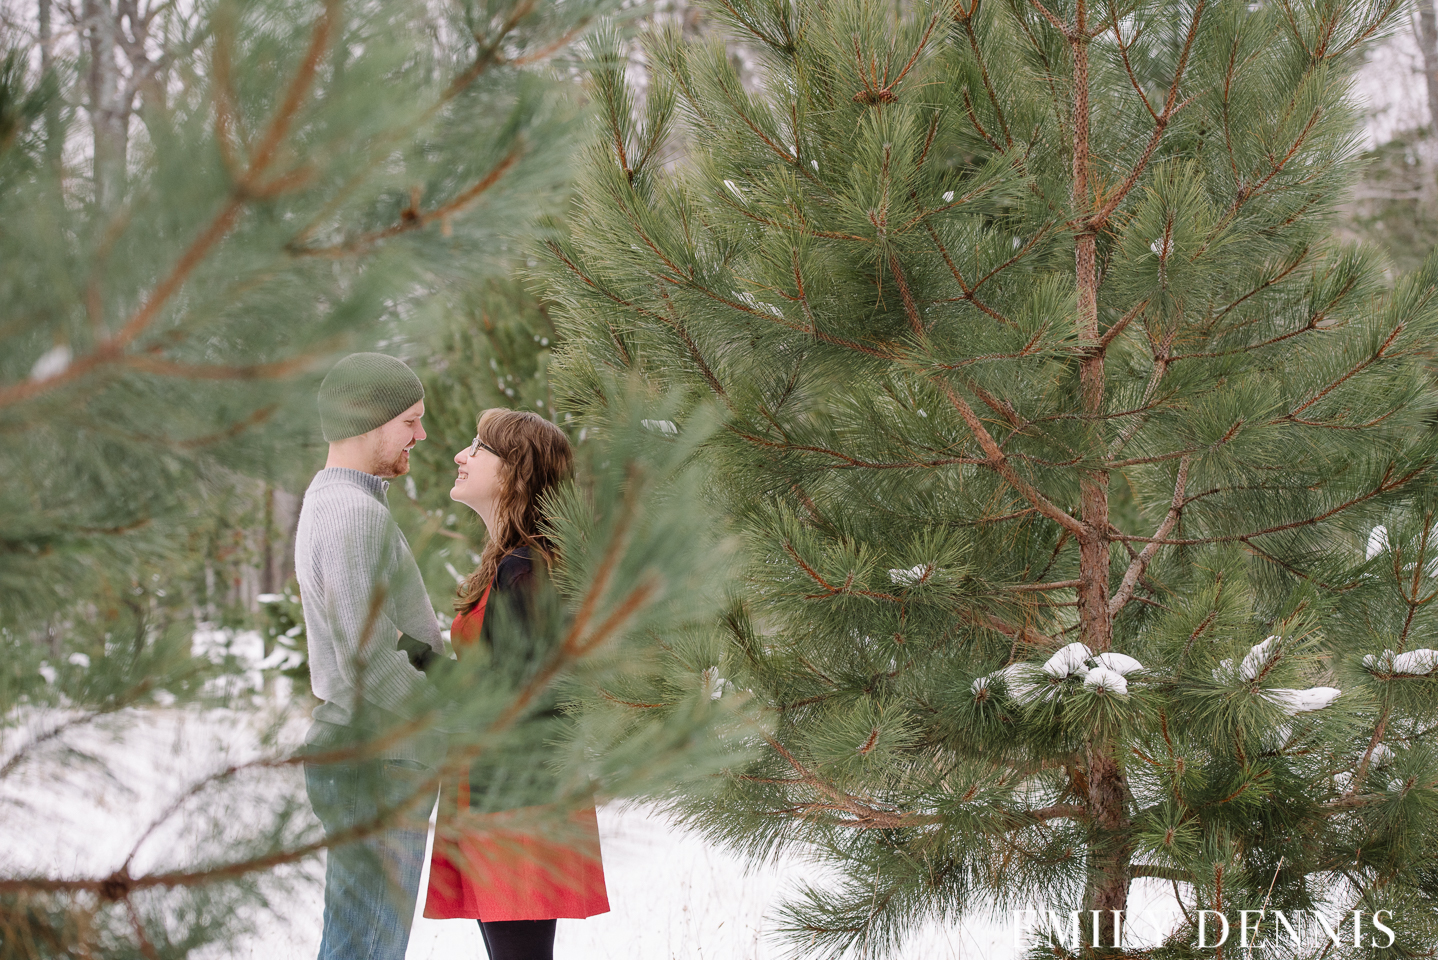 EMILY_DENNIS_PHOTOGRAPHY_engagement-14